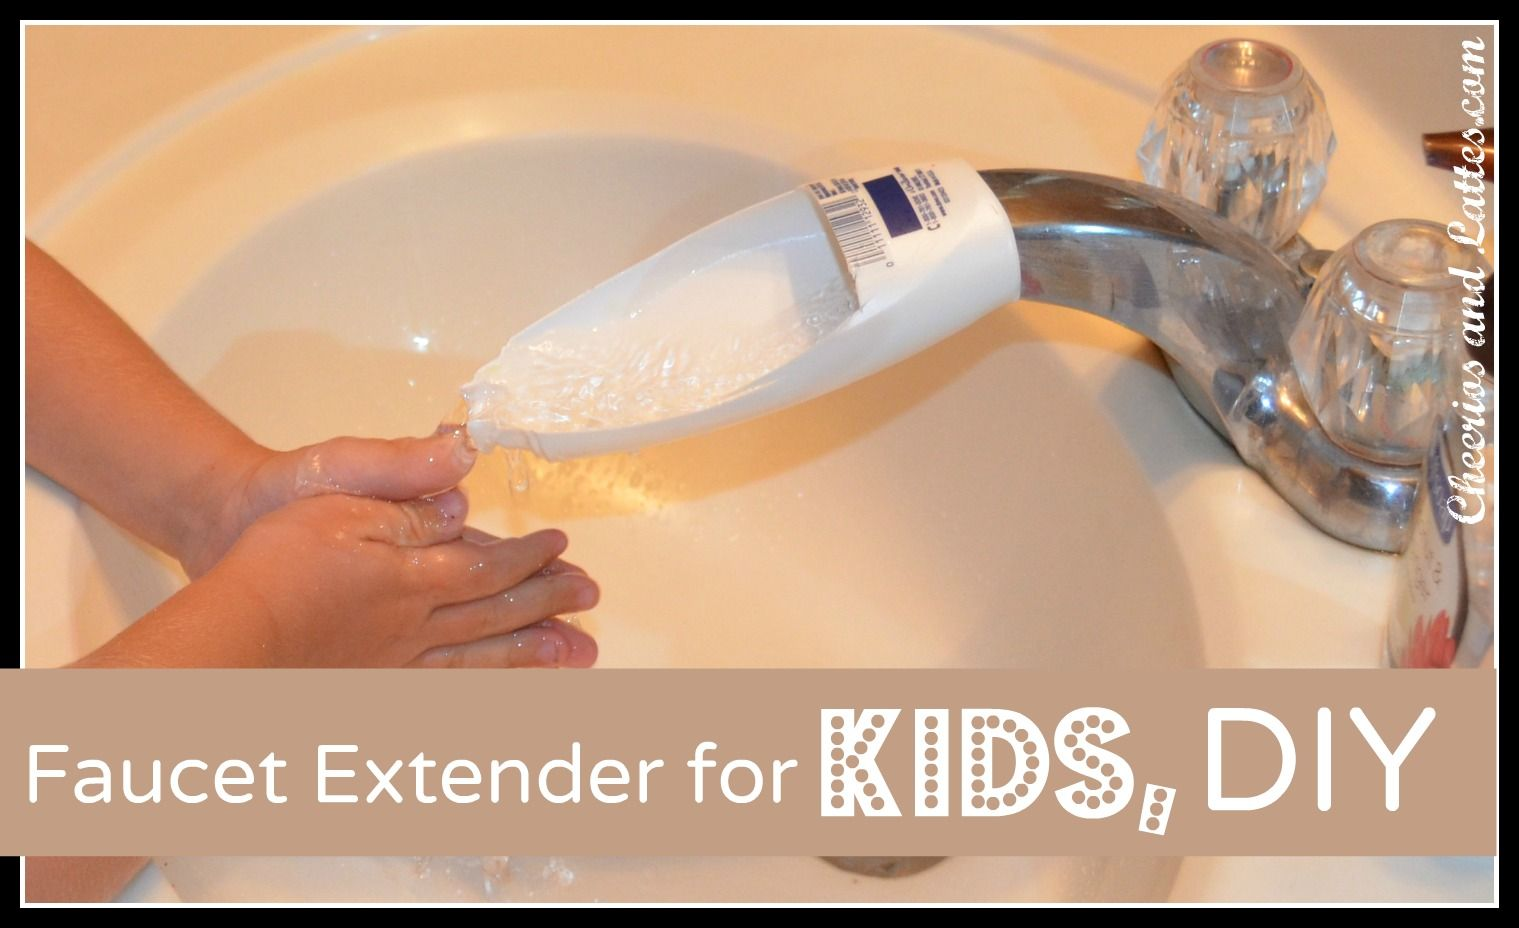 Faucet Extender for Kids, DIY this is a Mackenzie original over at ...